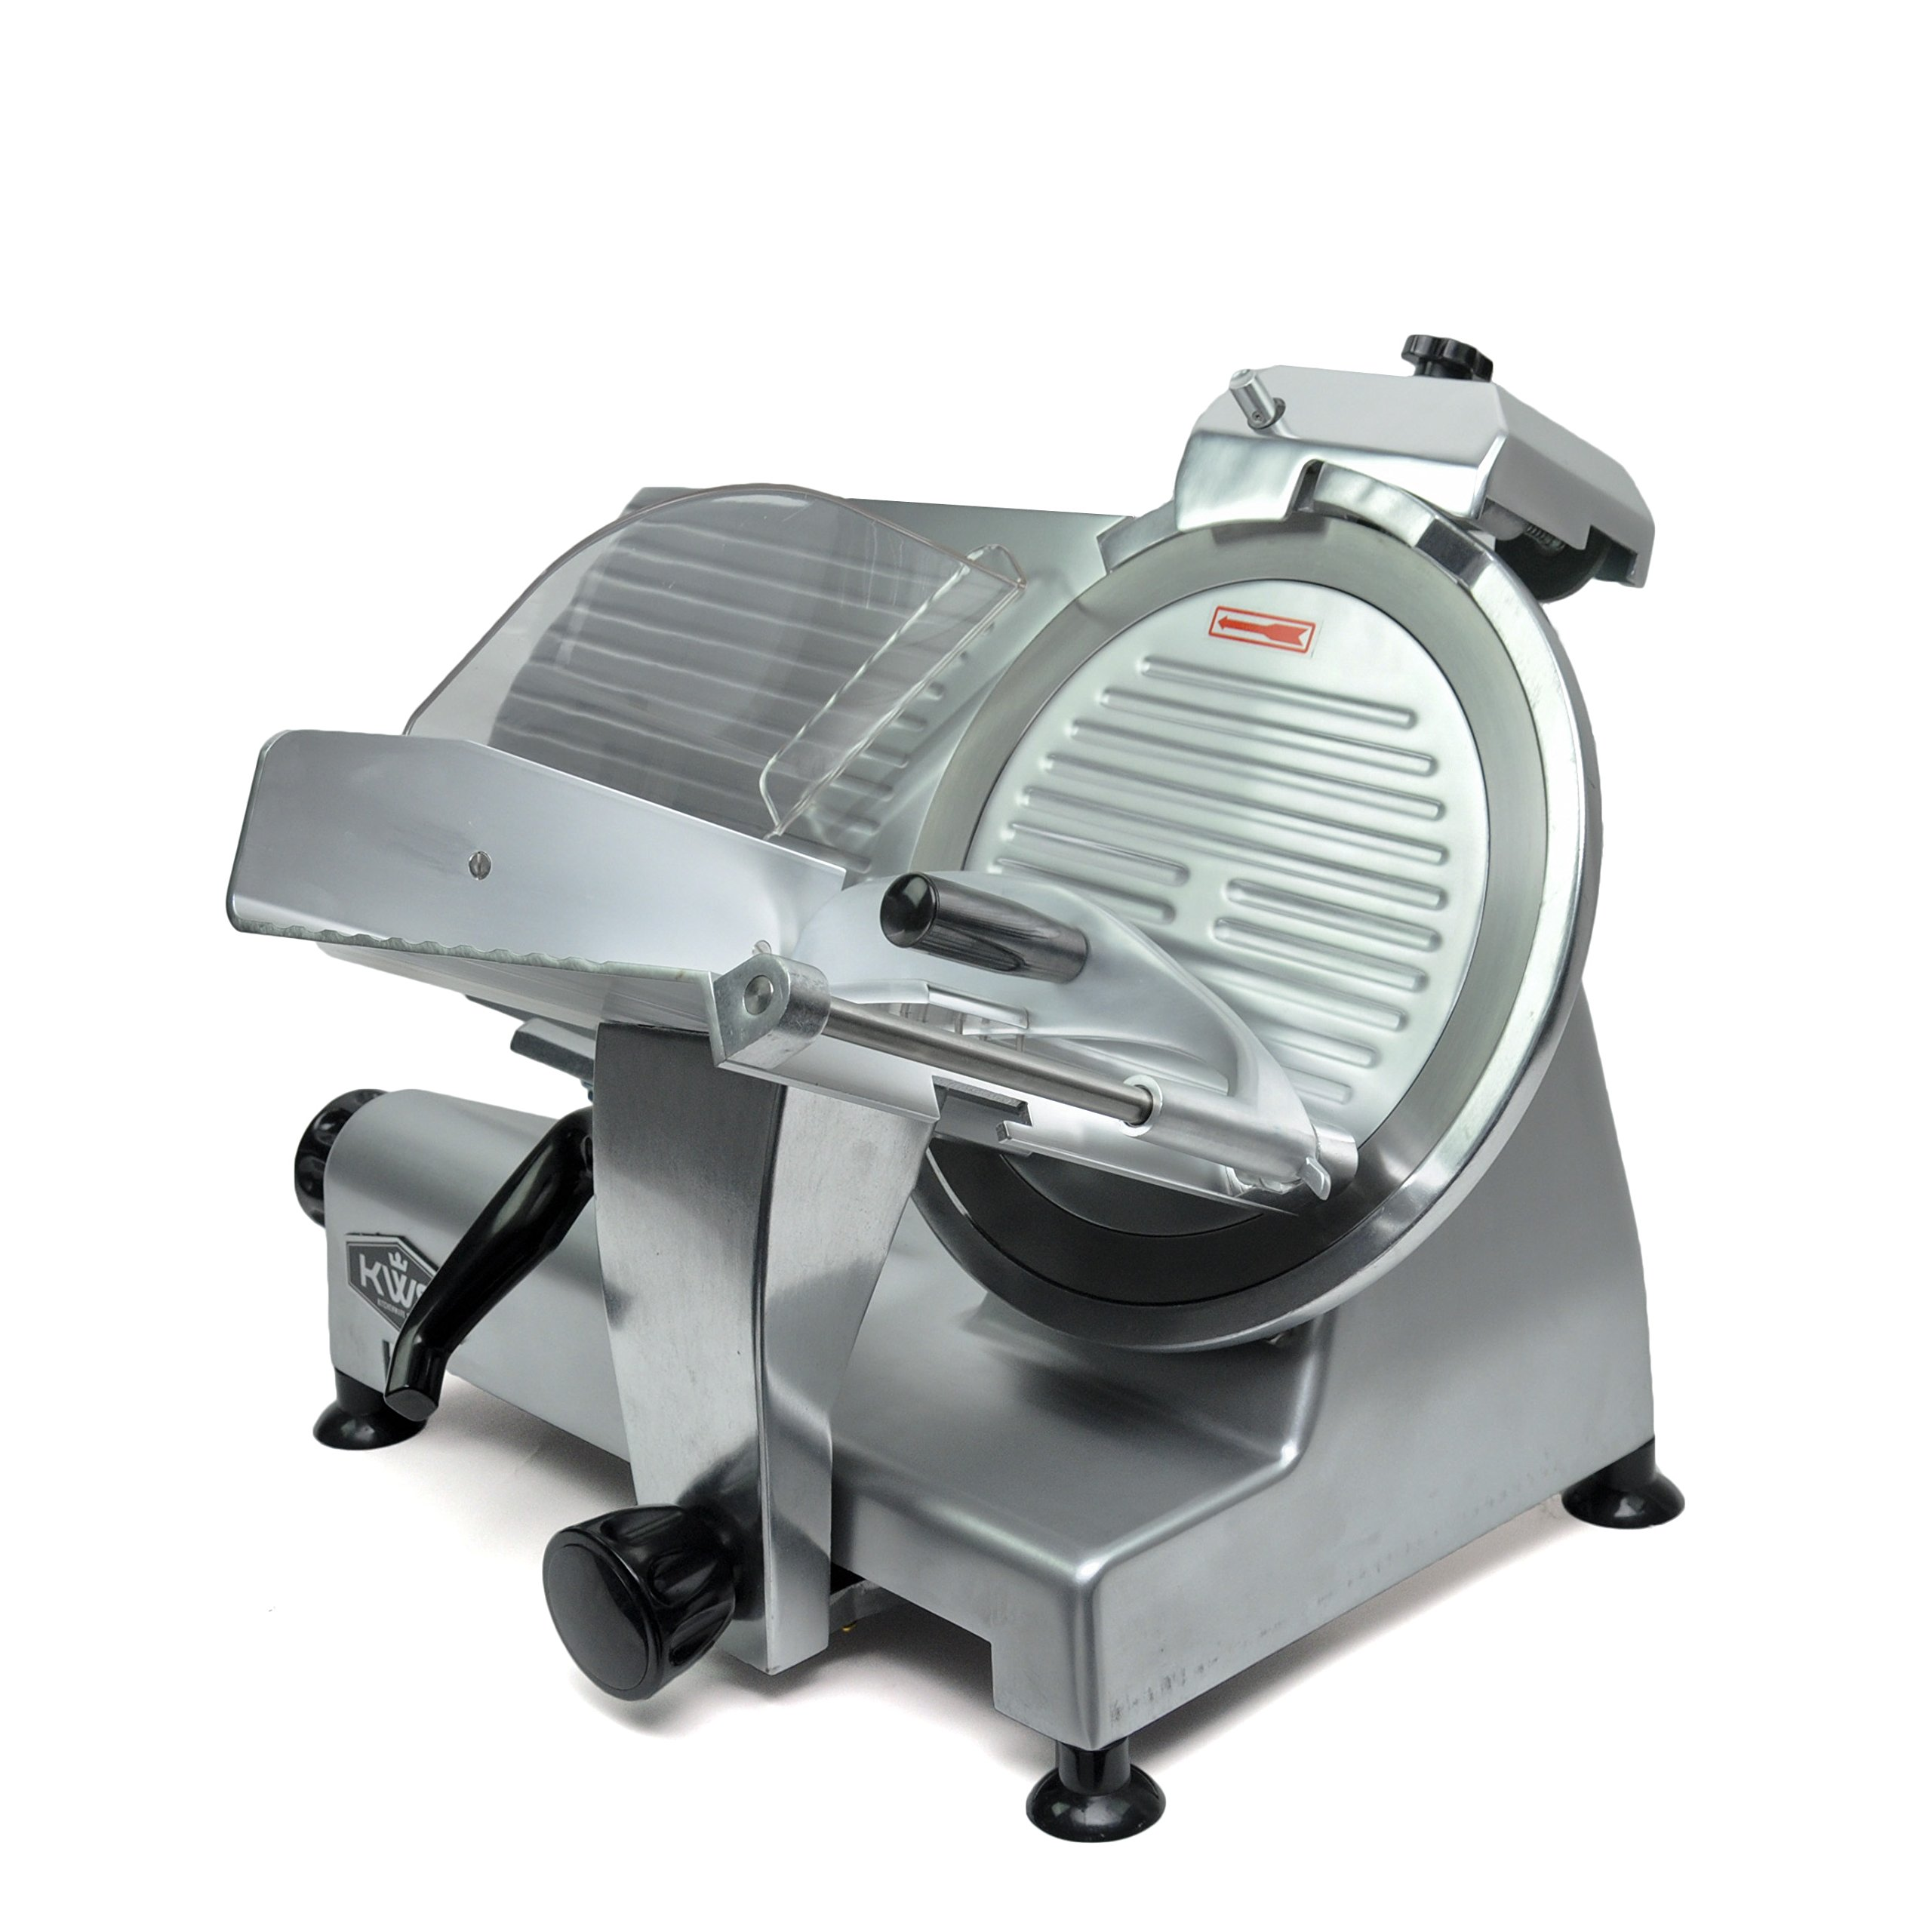 KWS Commercial 420w Electric Meat Slicer 12'' Frozen Meat Deli Slicer Coffee Shop/restaurant and Home Use Low Noises (Stainless Steel Blade--Silver)